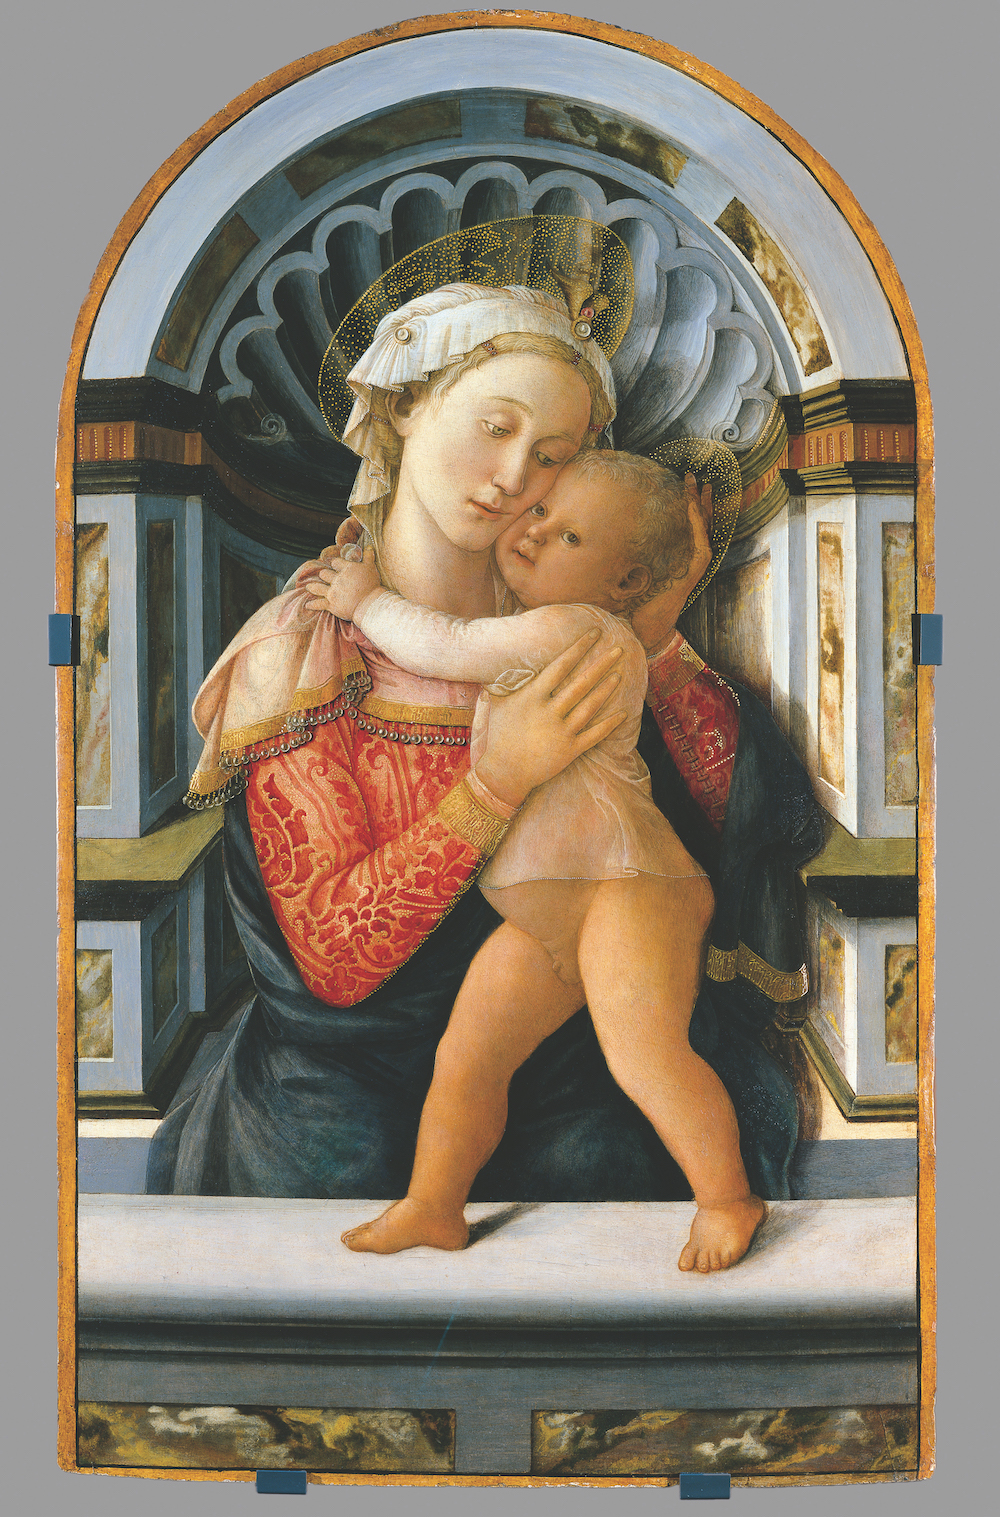 Early Renaissance style portrait depicting Mary and baby Jesus set against a Classical niche background. The image shows the faces of a light-skinned woman and baby, cheek-to-cheek in an embrace, with delicate golden halos framing their heads.